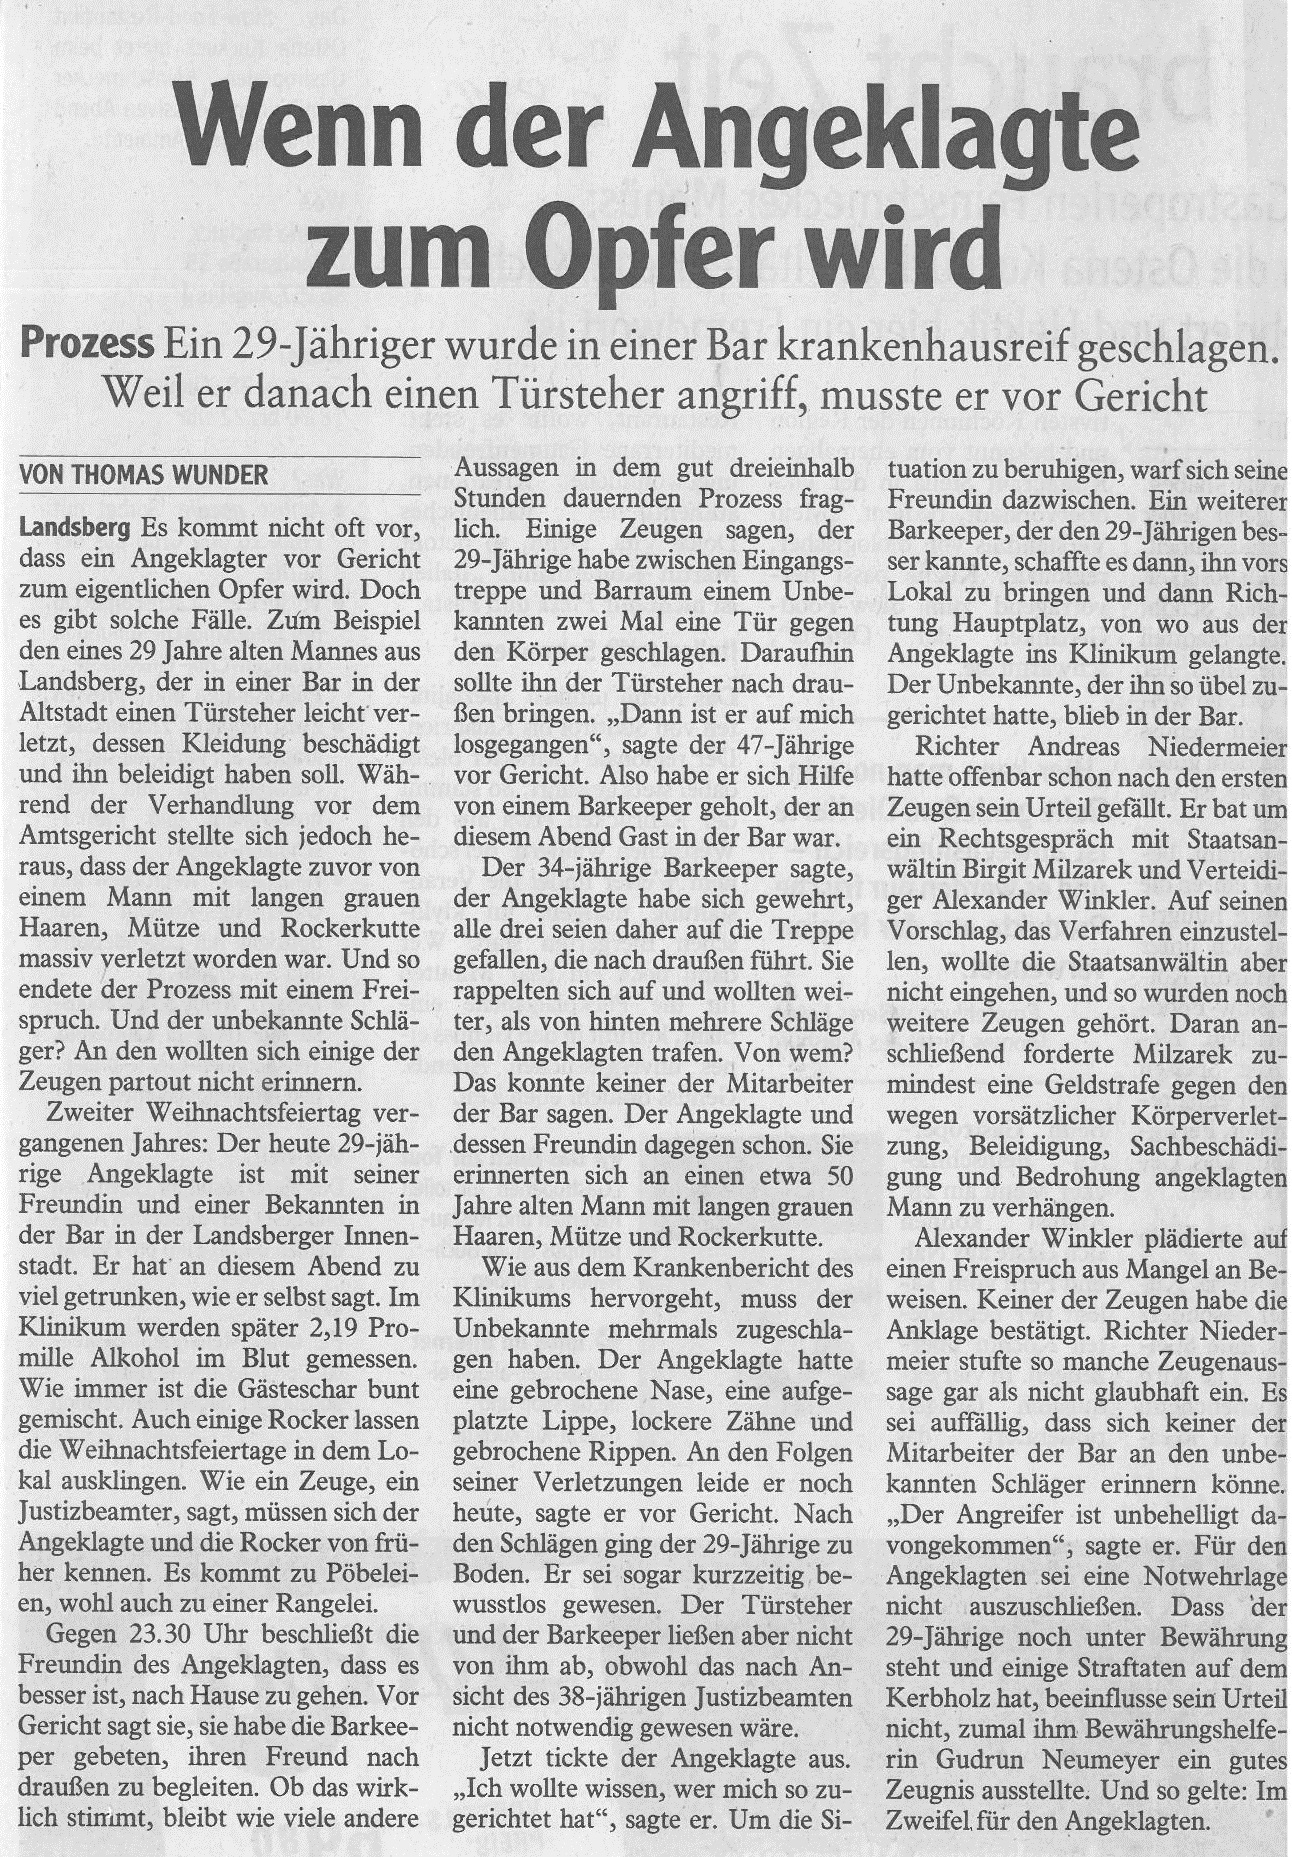 Landsberger Tagblatt, August 2016